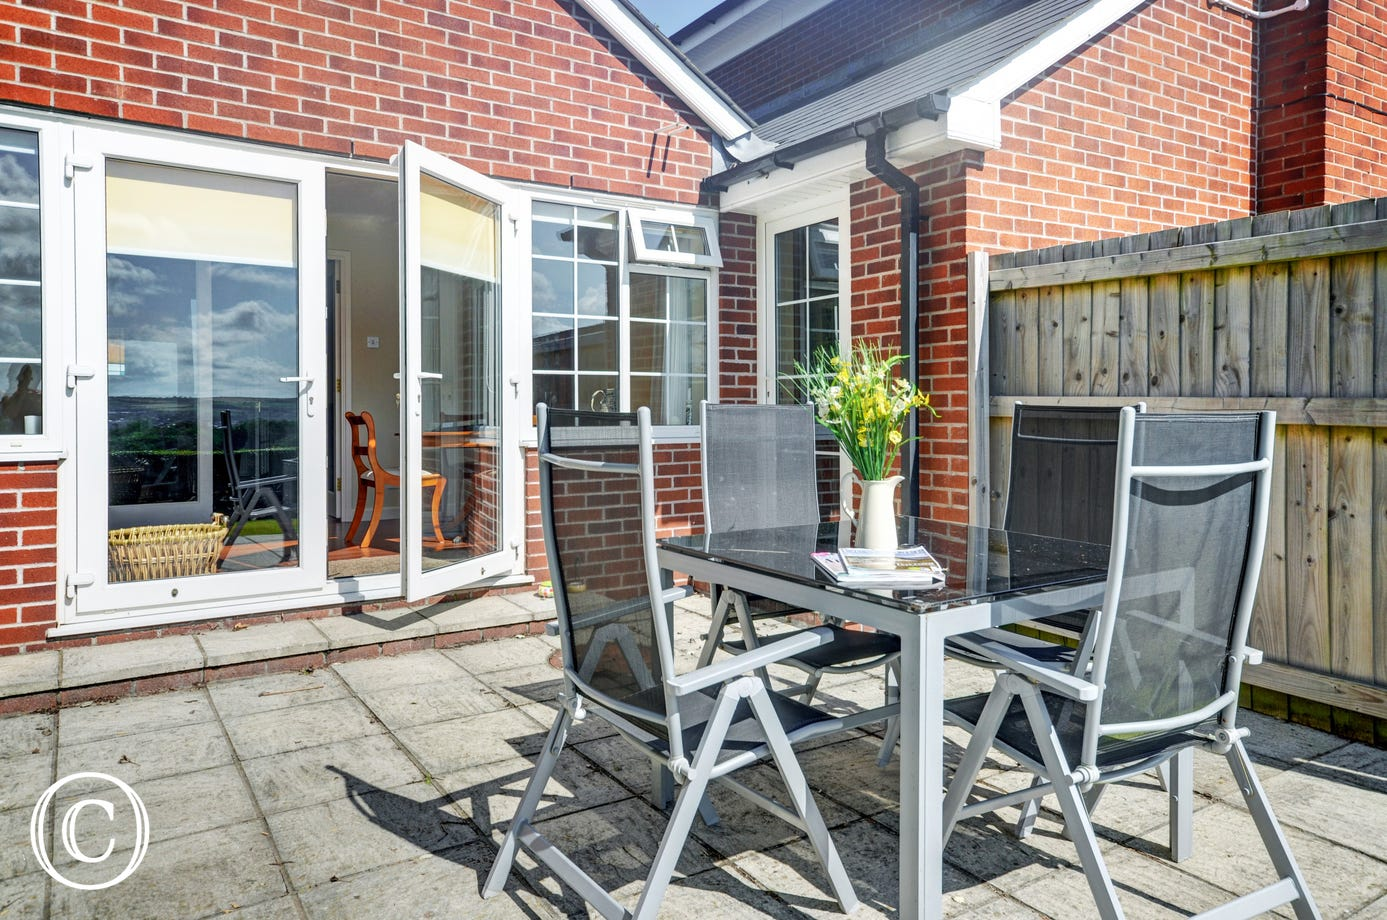 Enjoy al fresco dining on the lovely patio